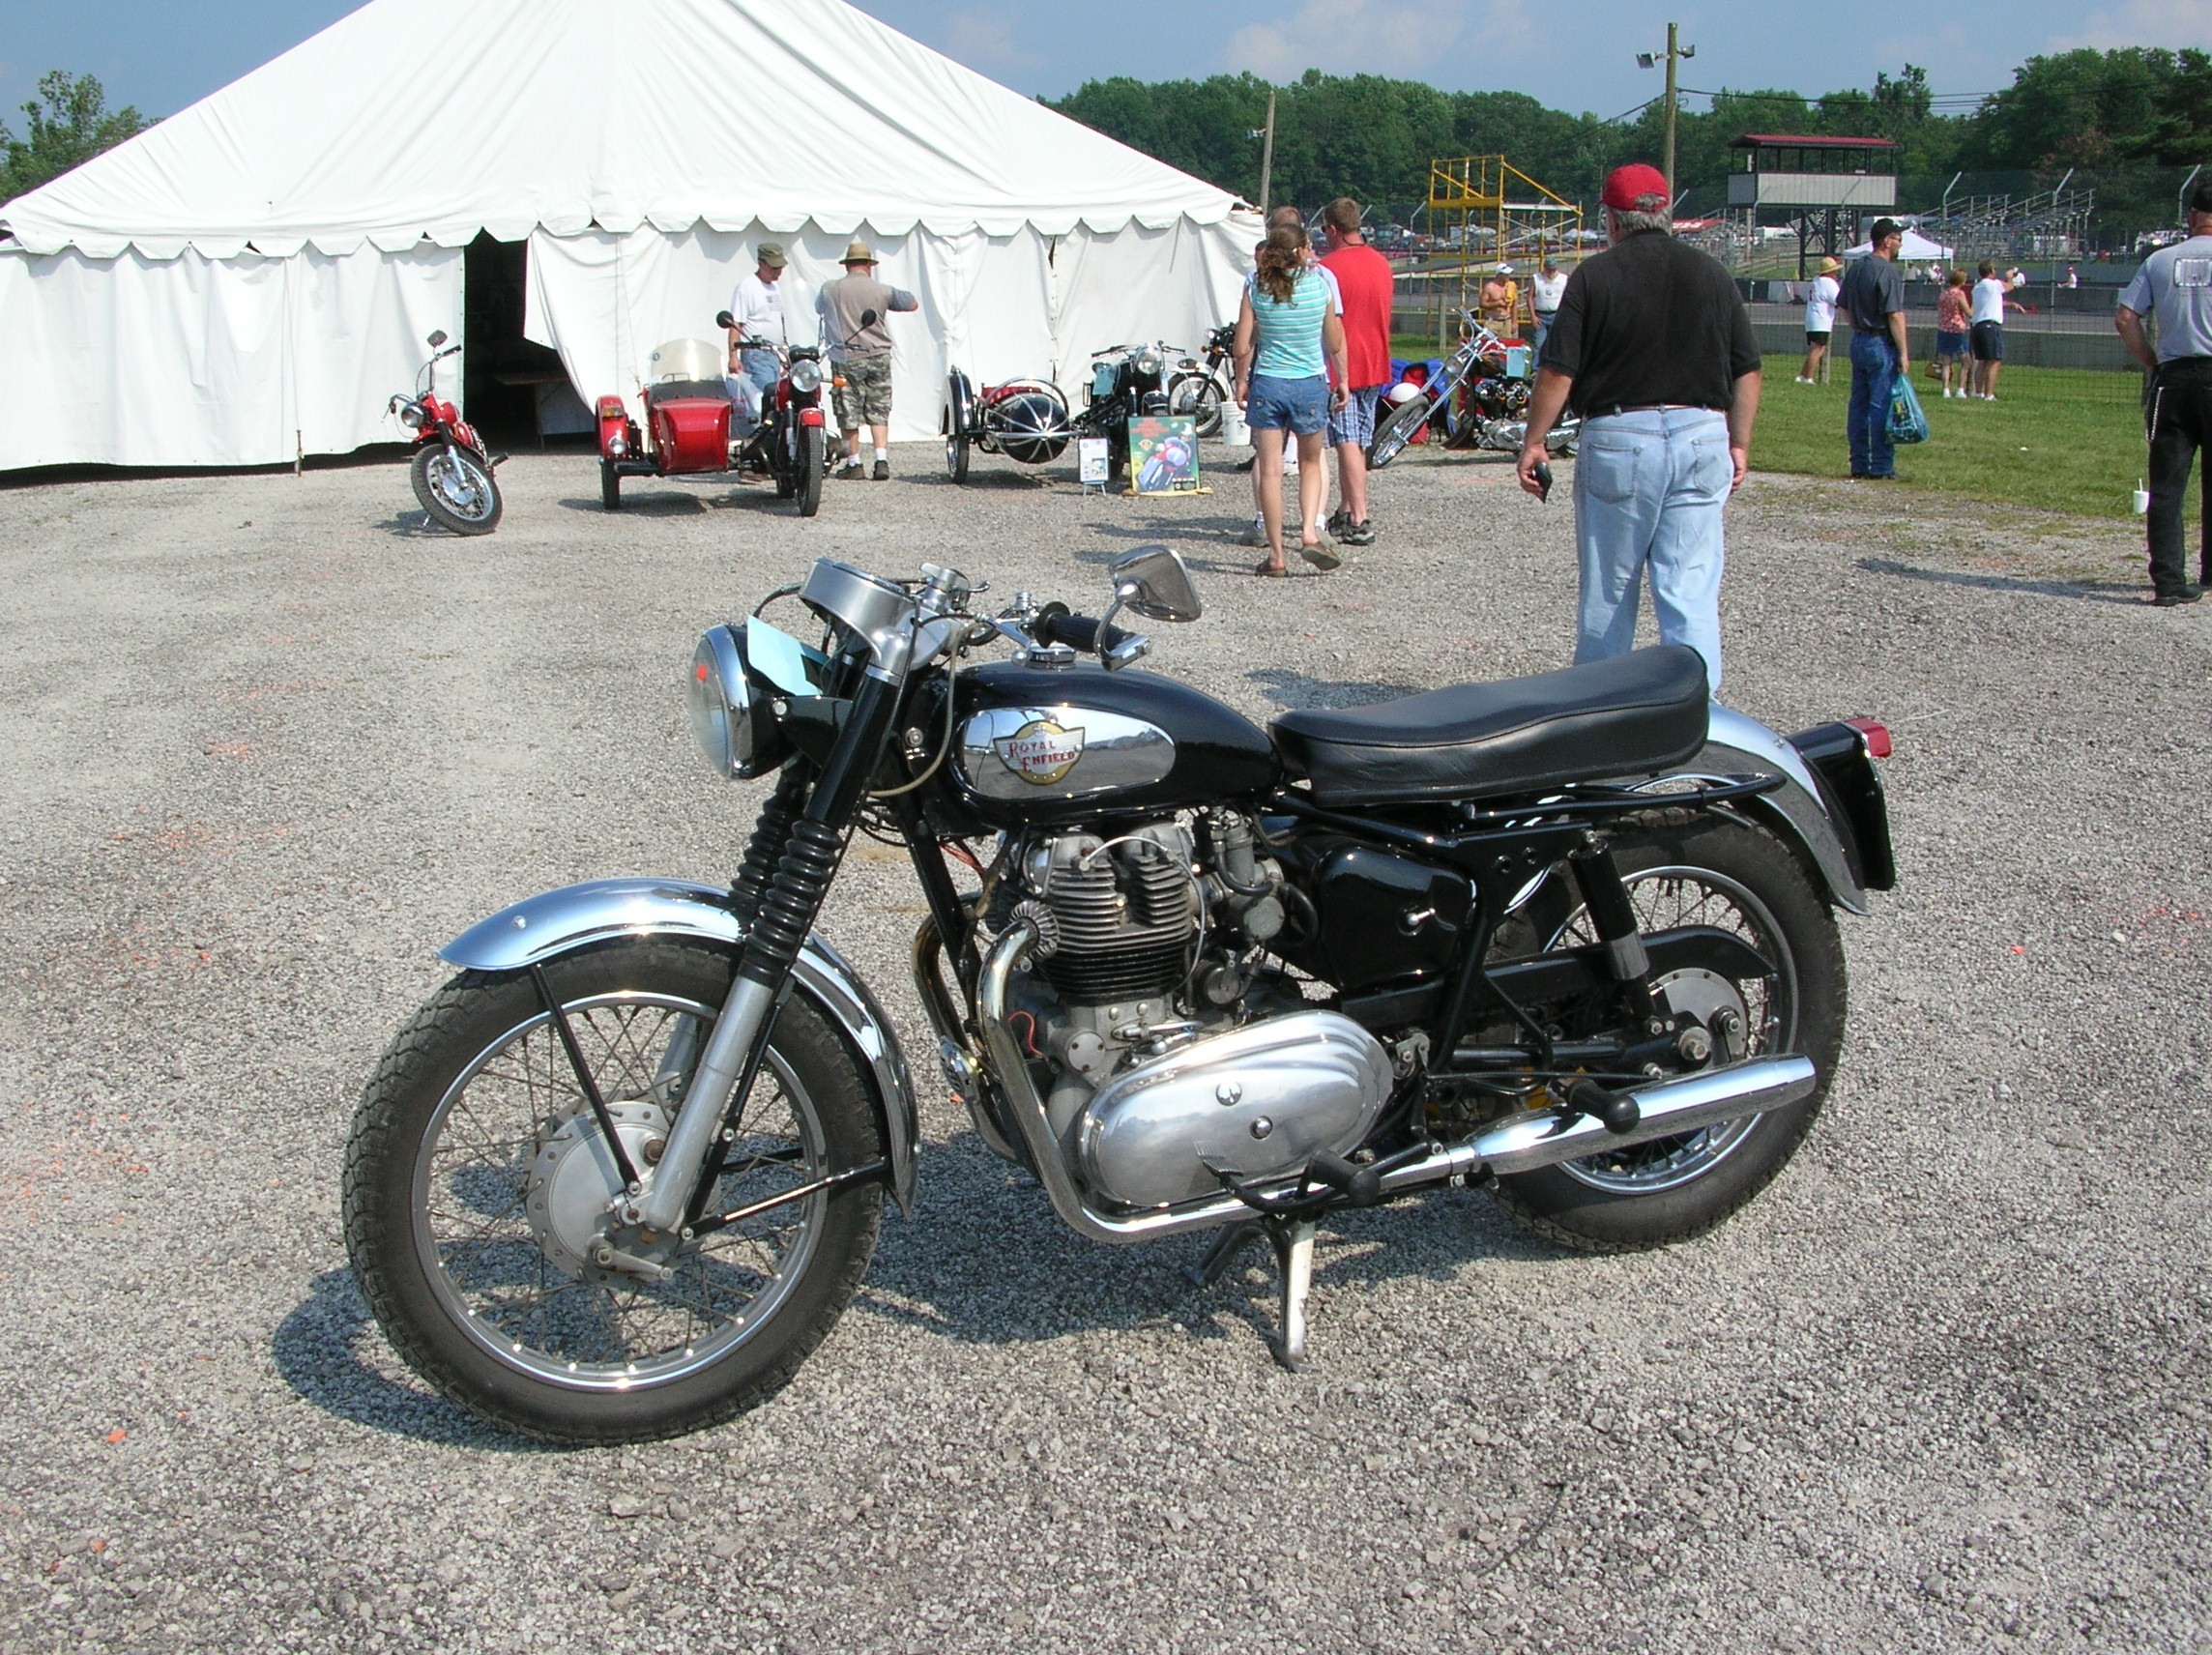 Royal Enfield Bullet 500 Army 2000 images #123248